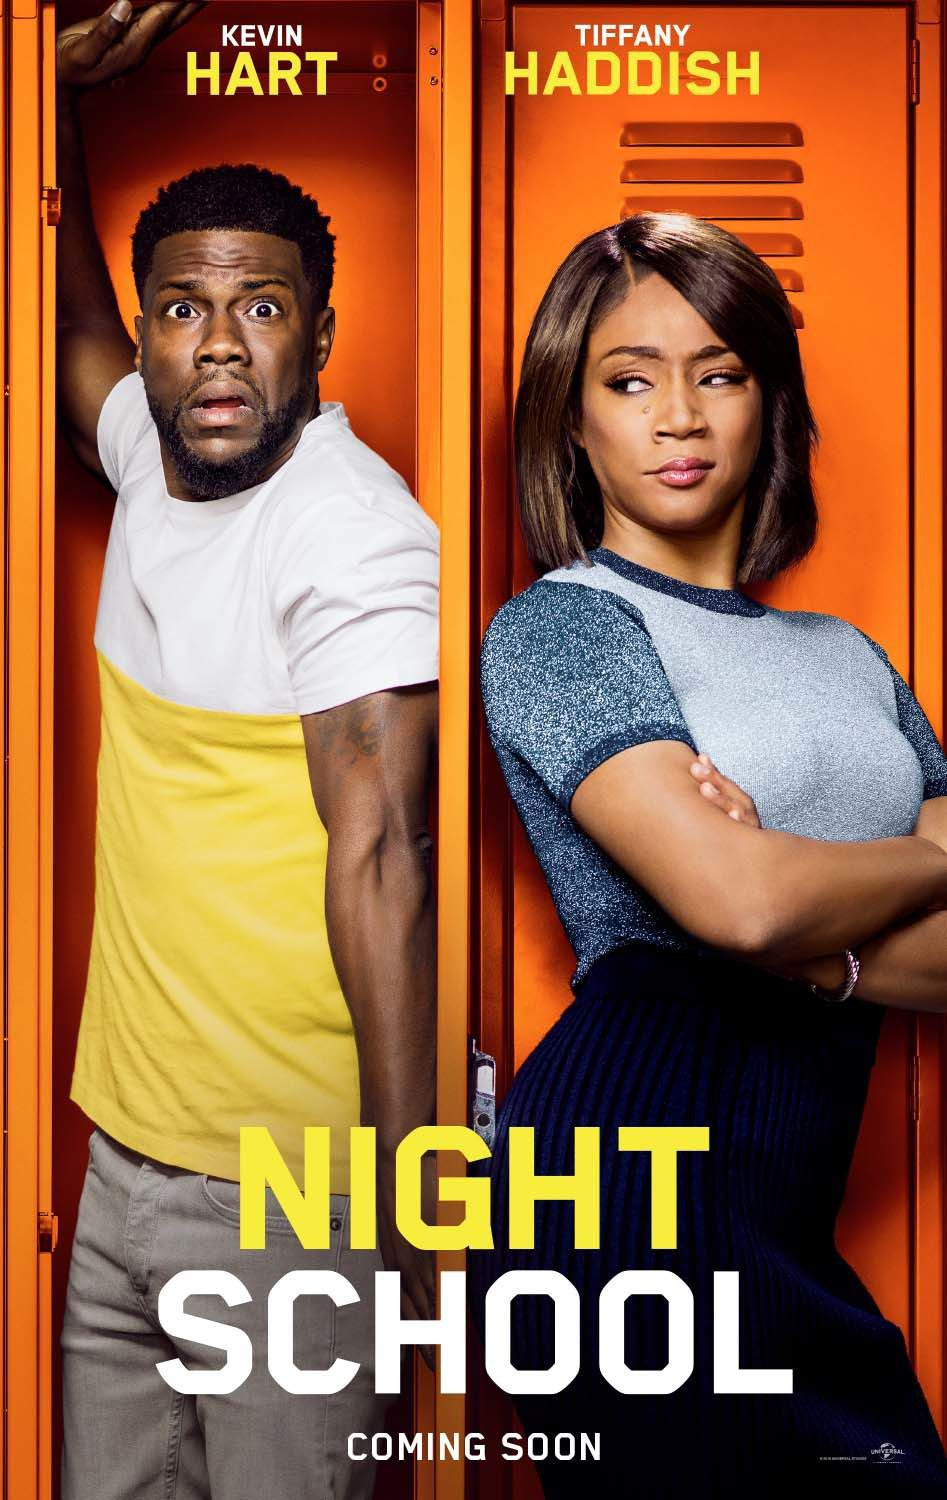 Night School - Cast: Kevin Hart, Tiffany Haddish - comedy film poster 2018